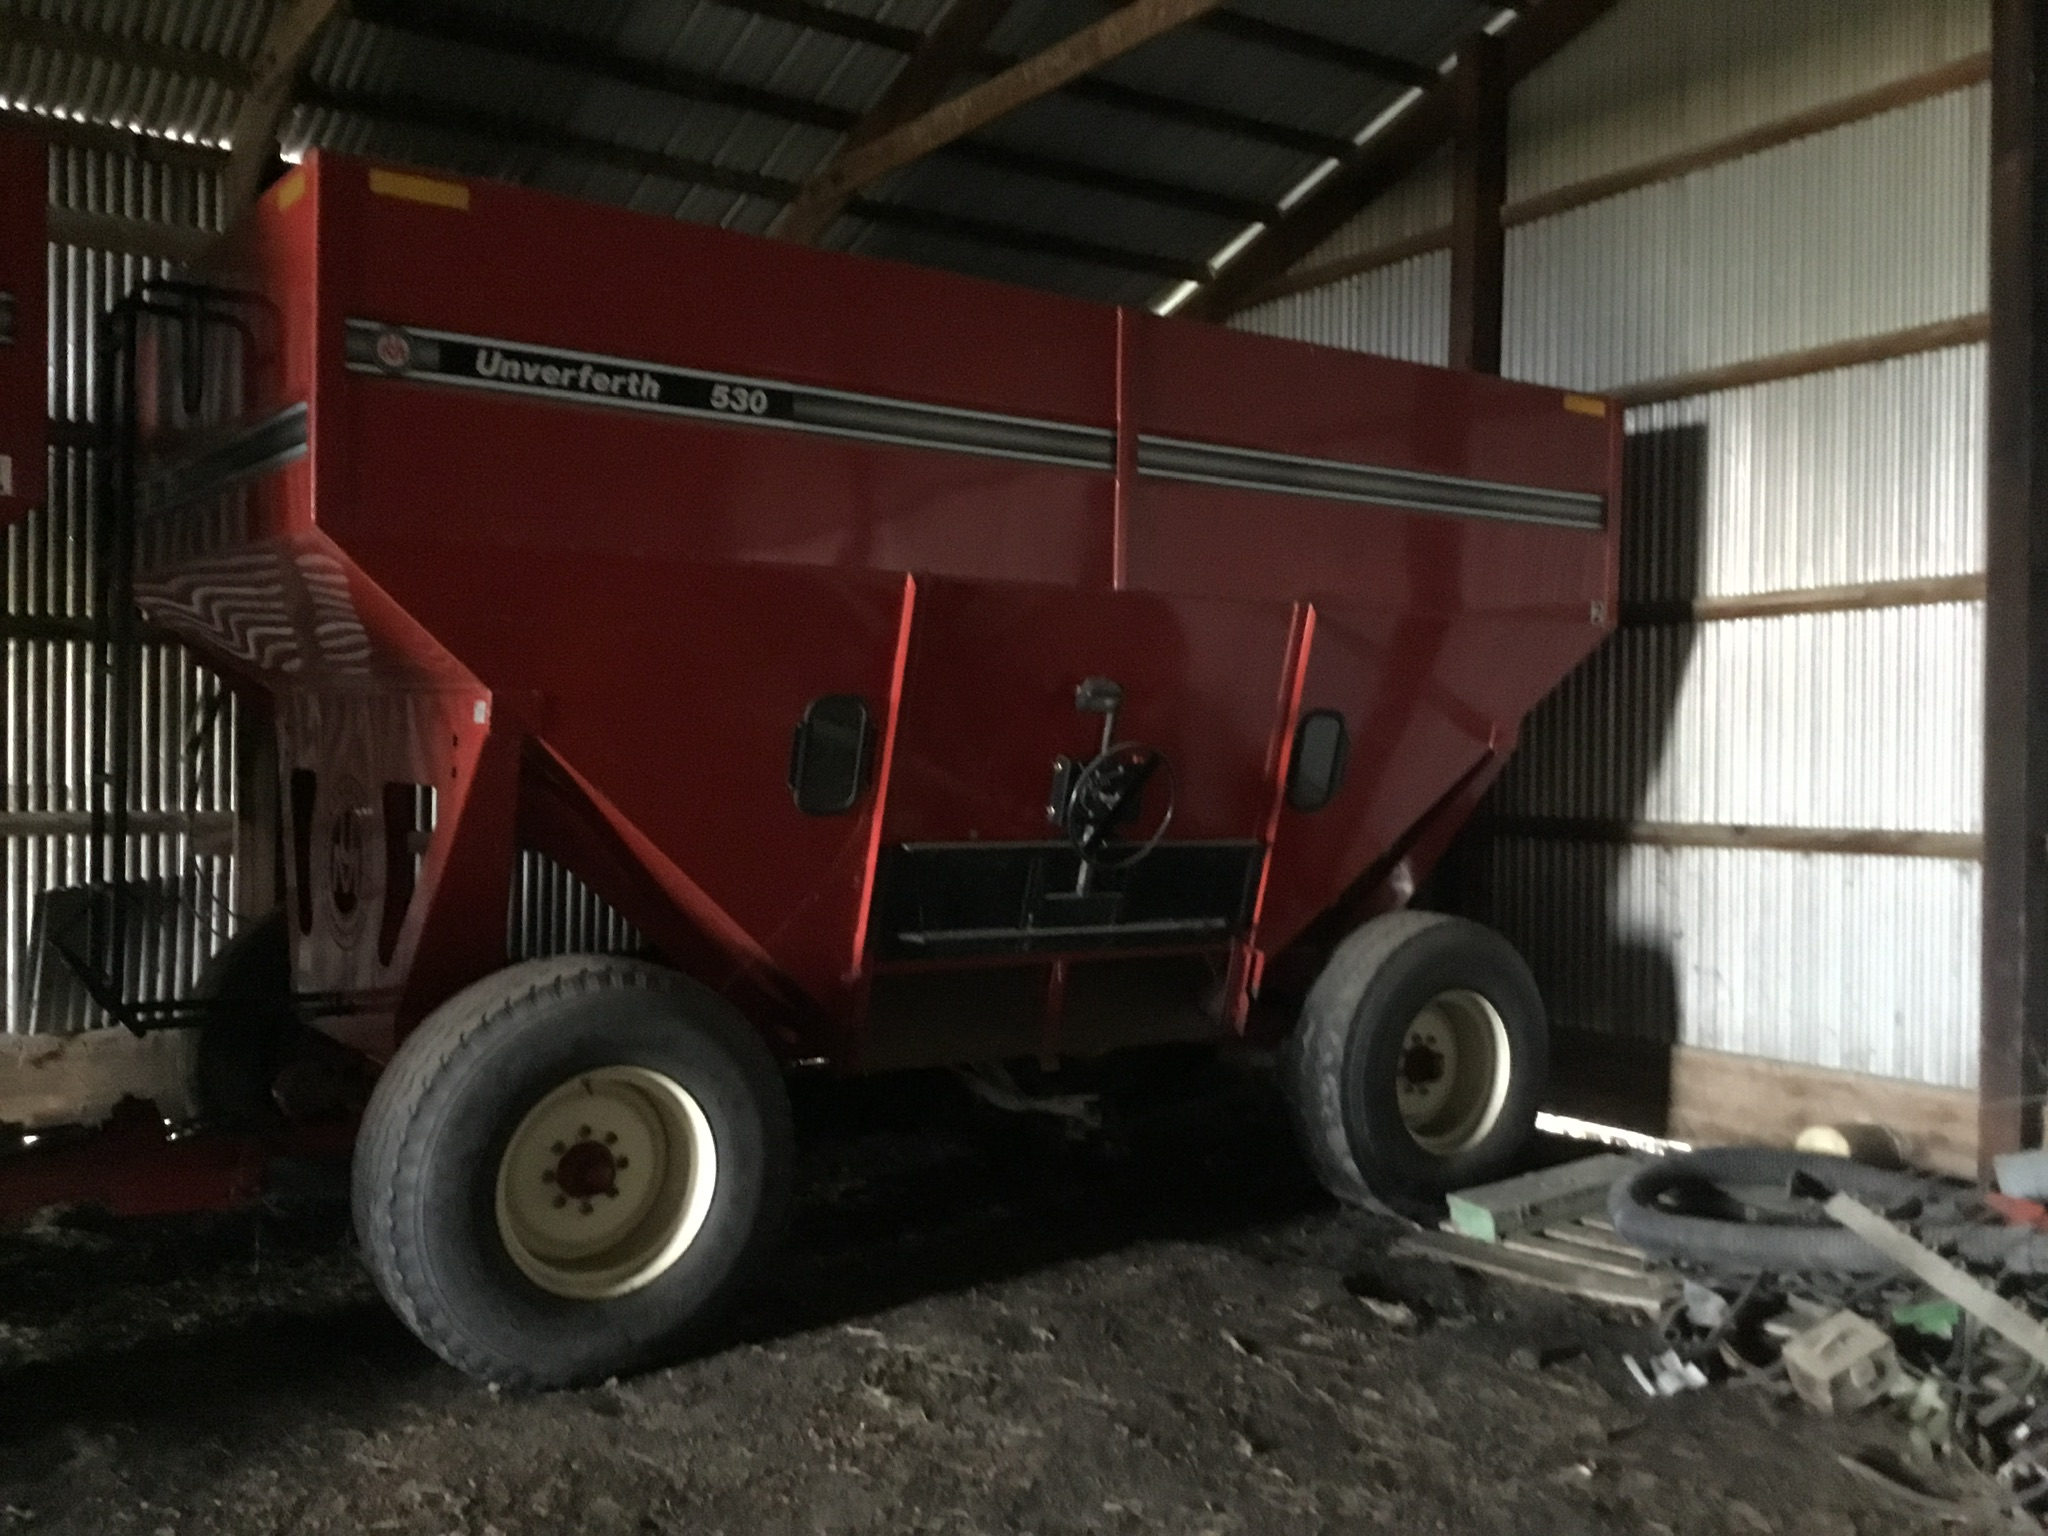 Unverferth 530 Side Dump Wagon, Brakes, 425-65R-22.5 Tires, Serial #B206-50-119, Red, Sharp - Image 3 of 6